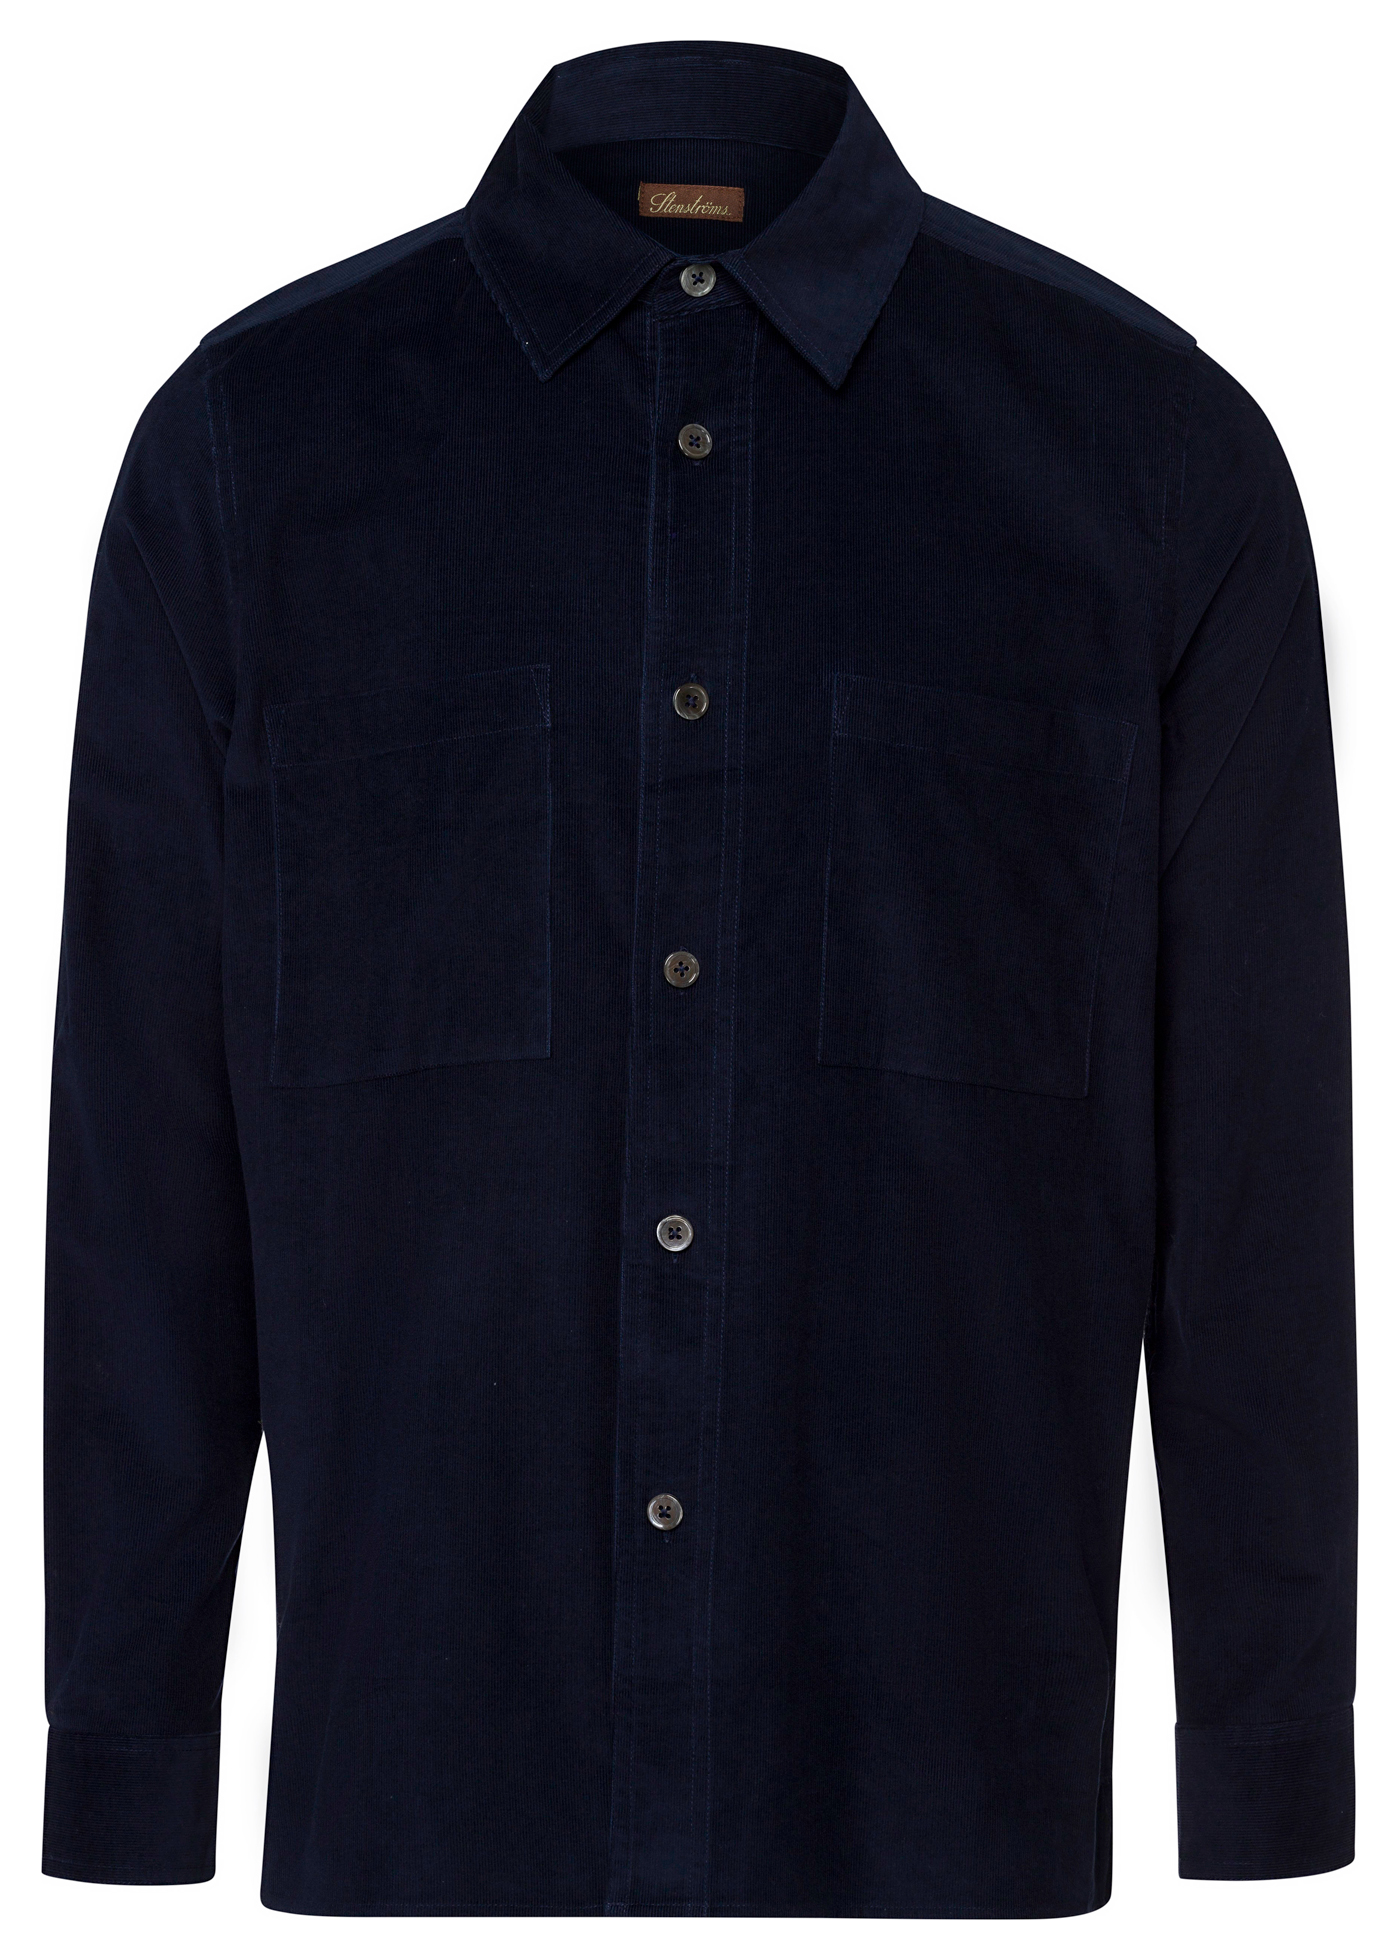 Cotton Cord Overshirt image number 0